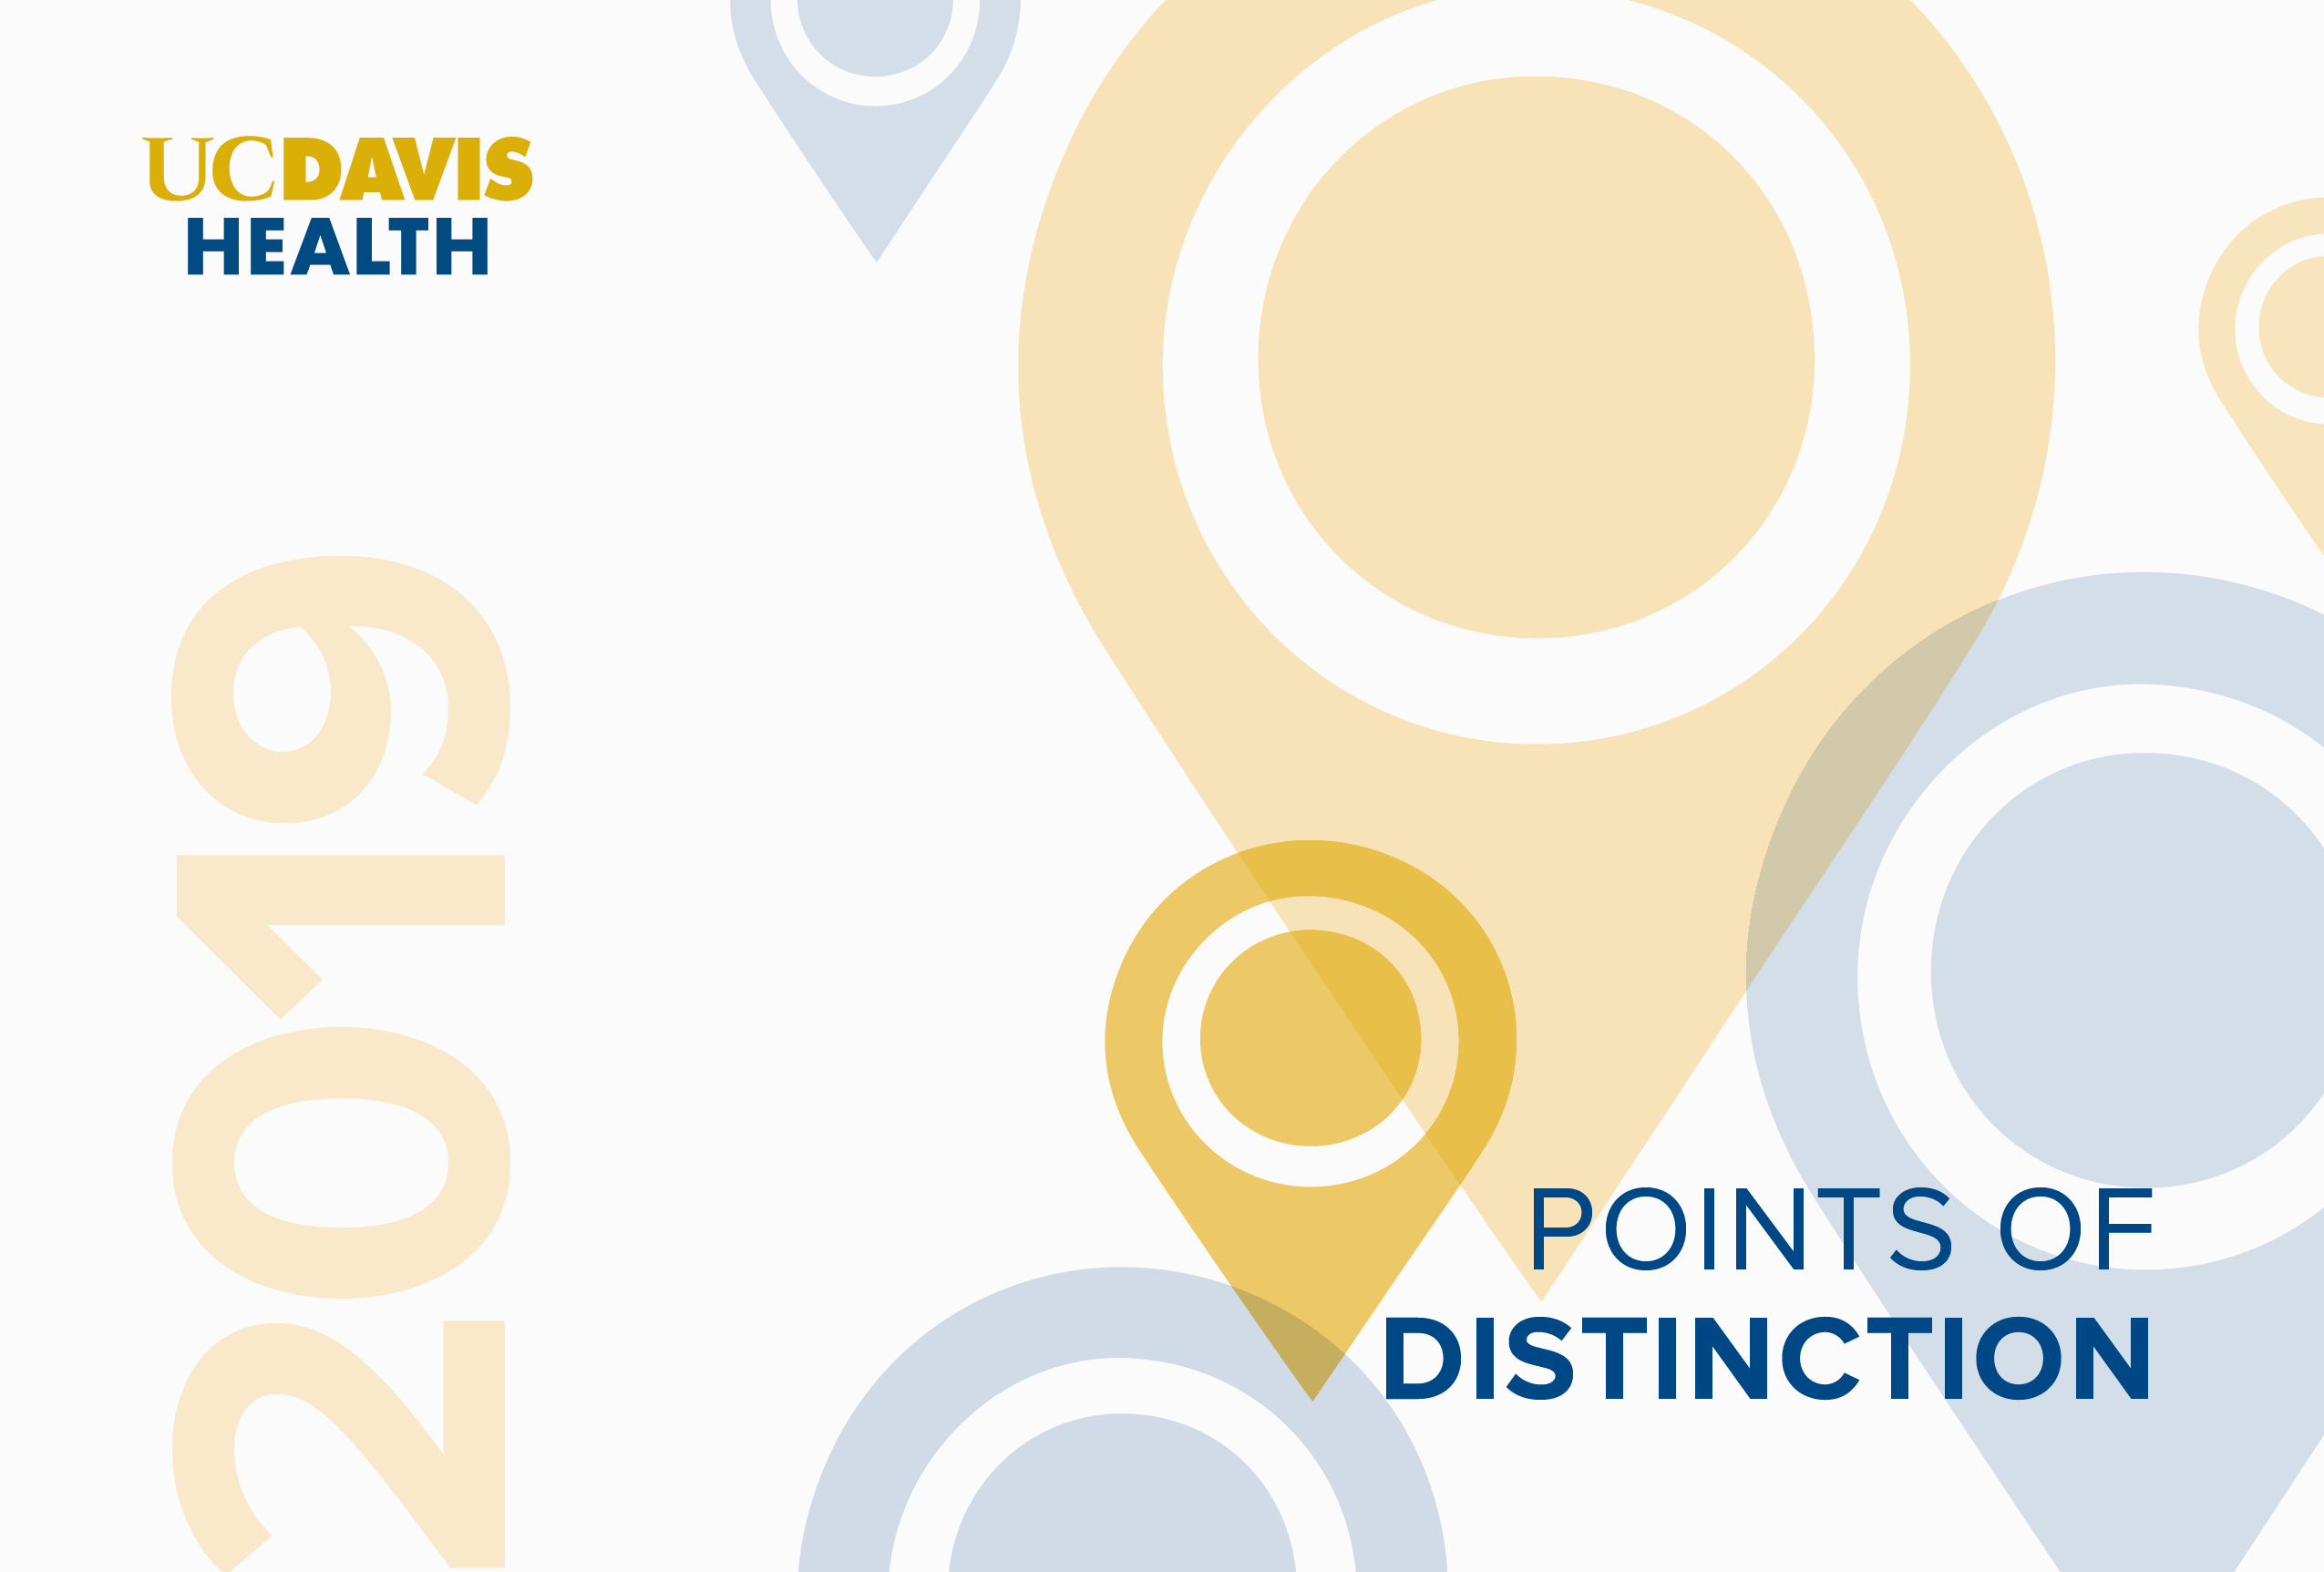 UC Davis Health Points of Distinction